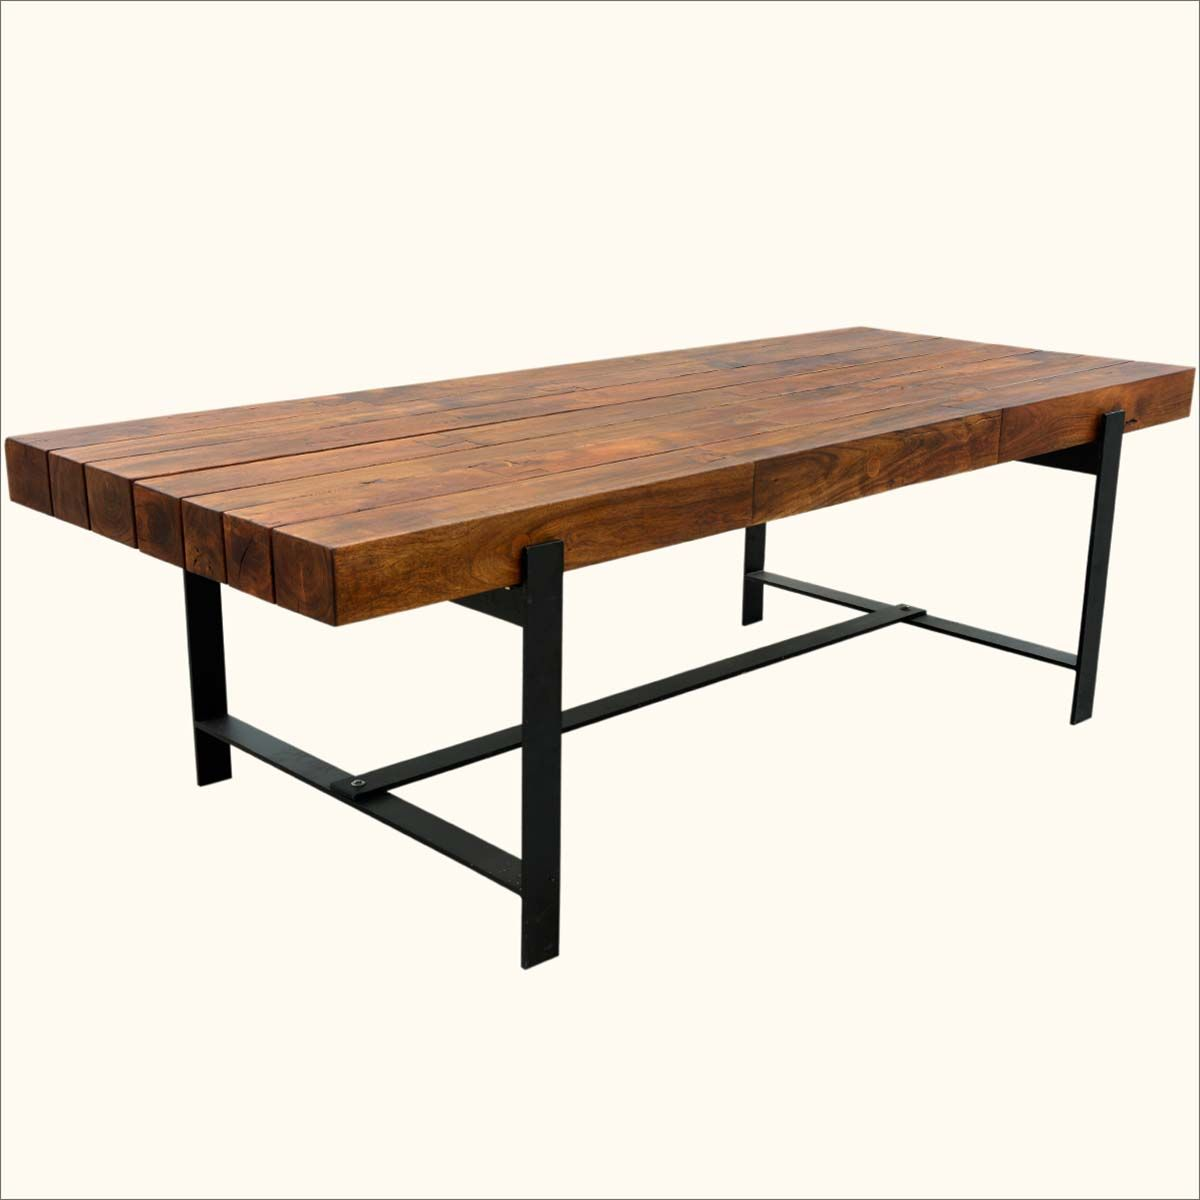 Unique Industrial Iron Acacia Wood 94 Large Diningtable Made